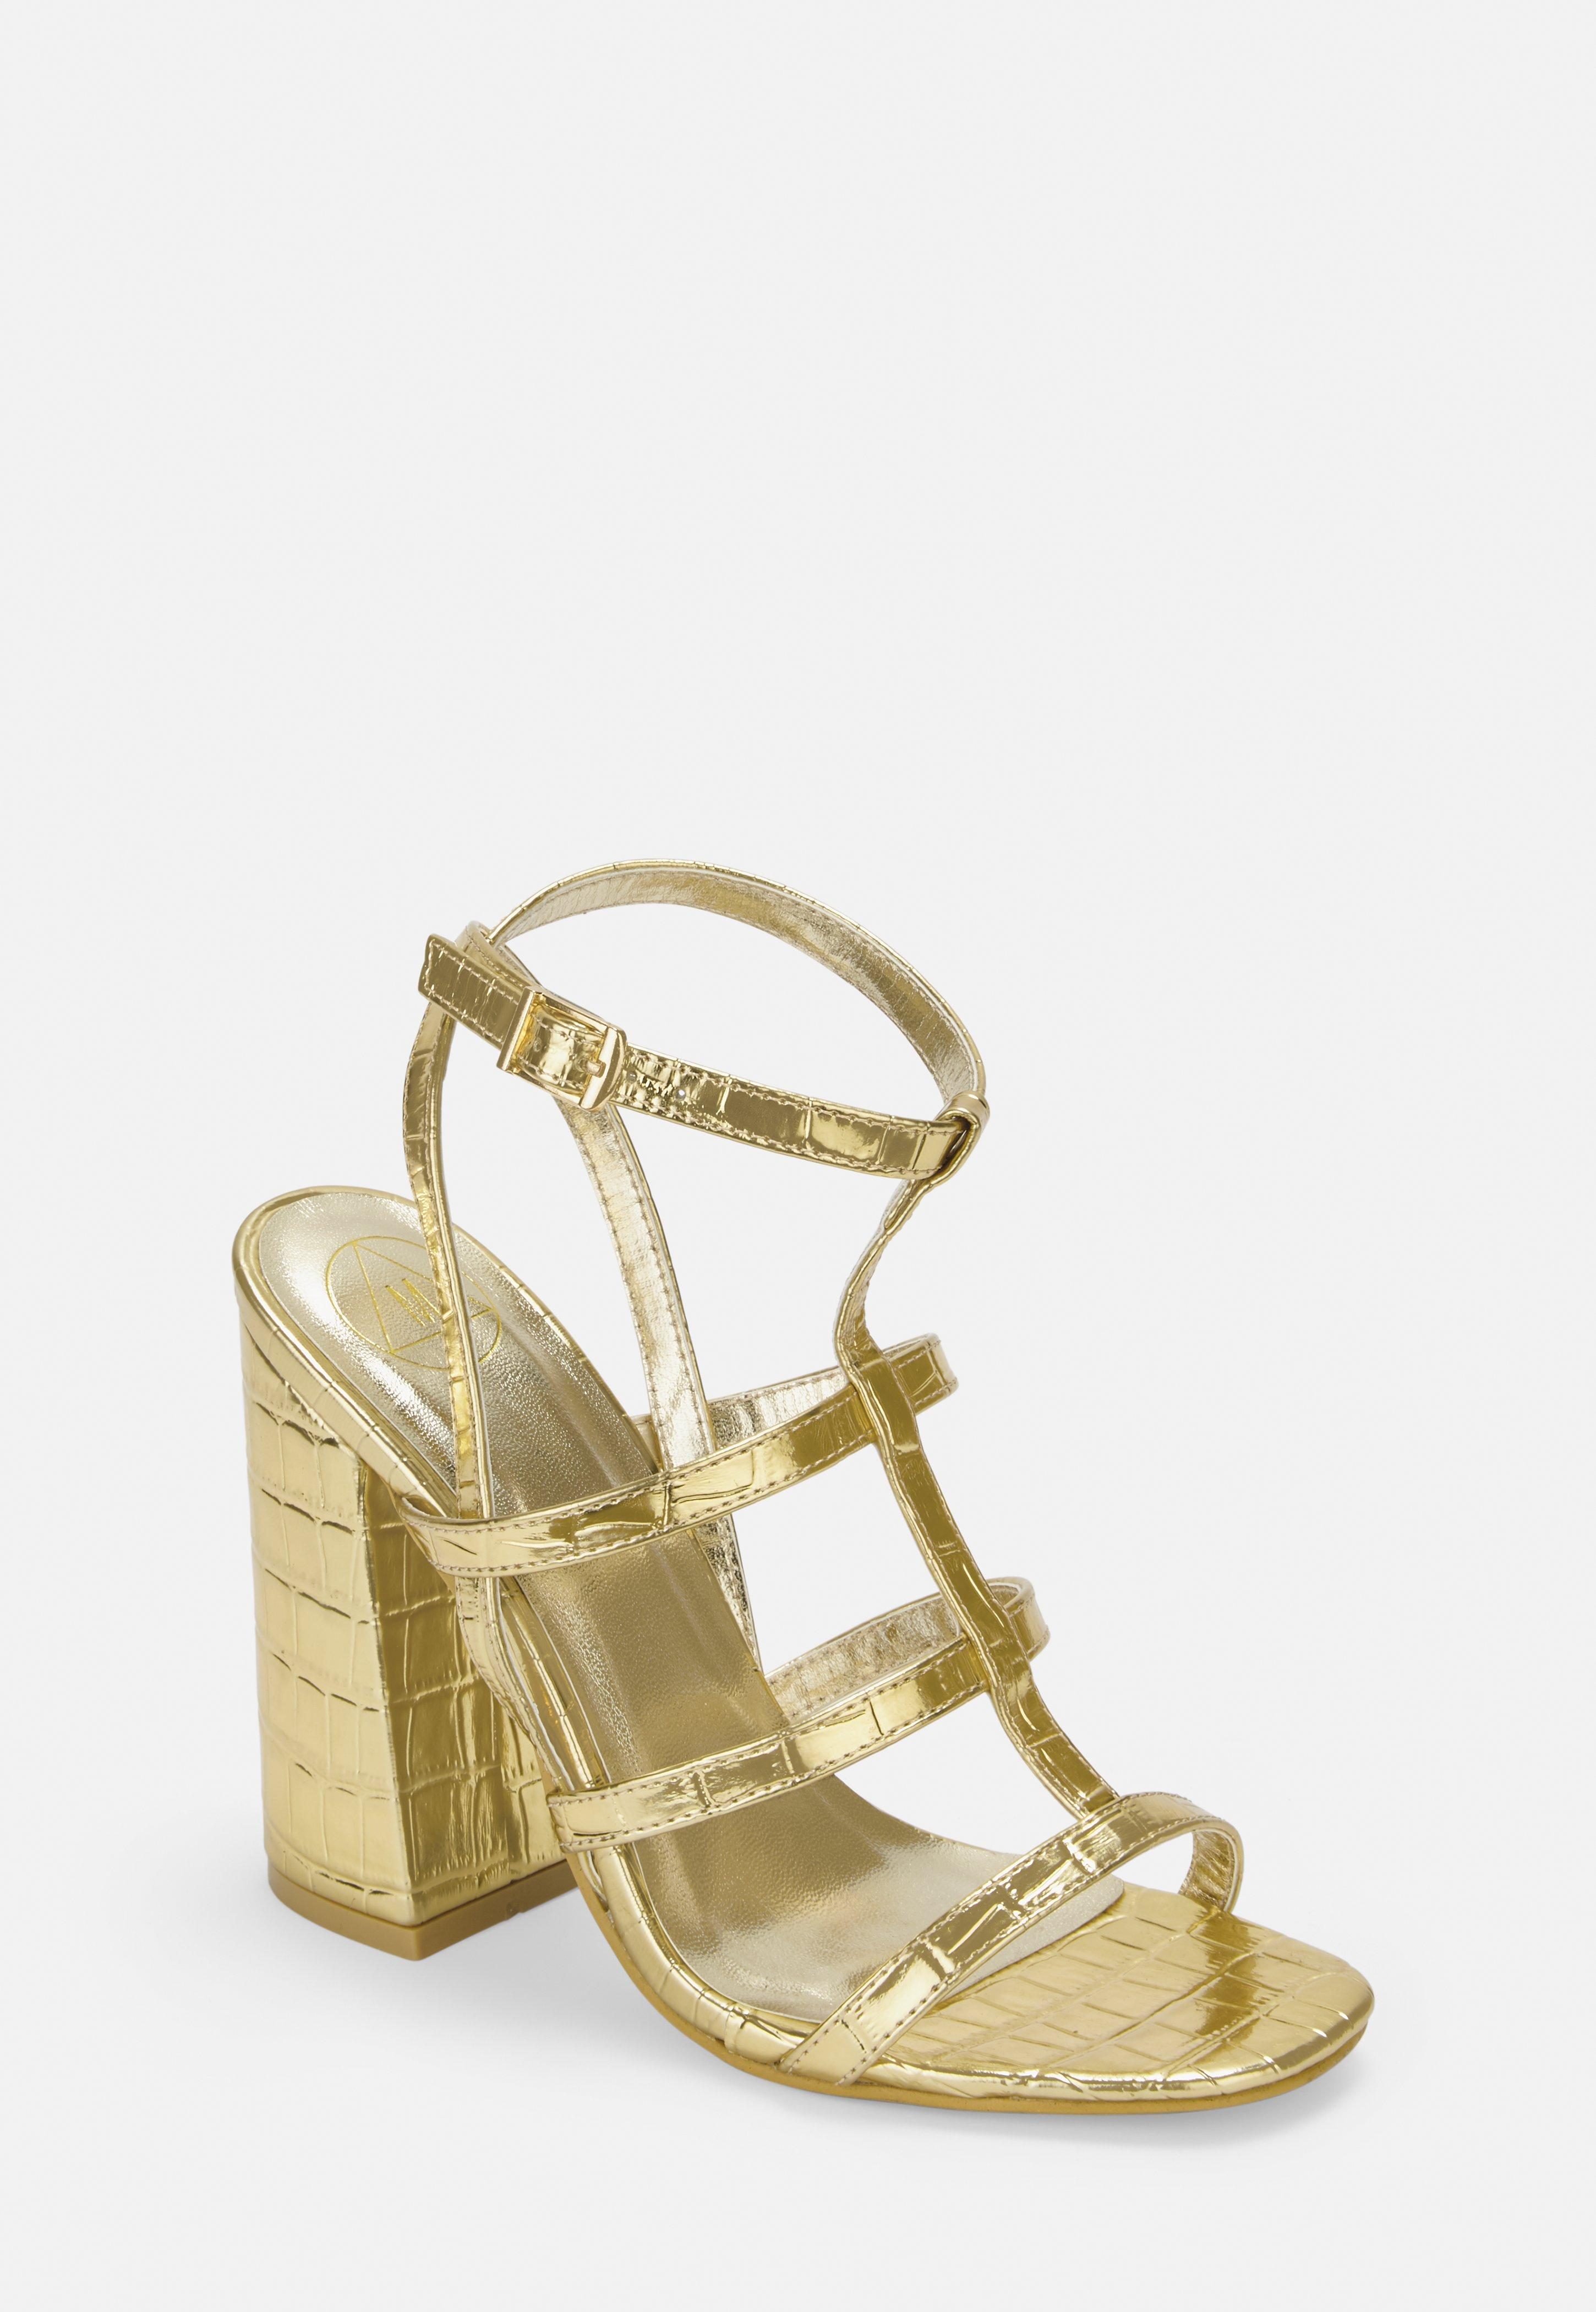 7b2b2fd5c6 Heeled Sandals, Strappy + Barely There Sandals - Missguided